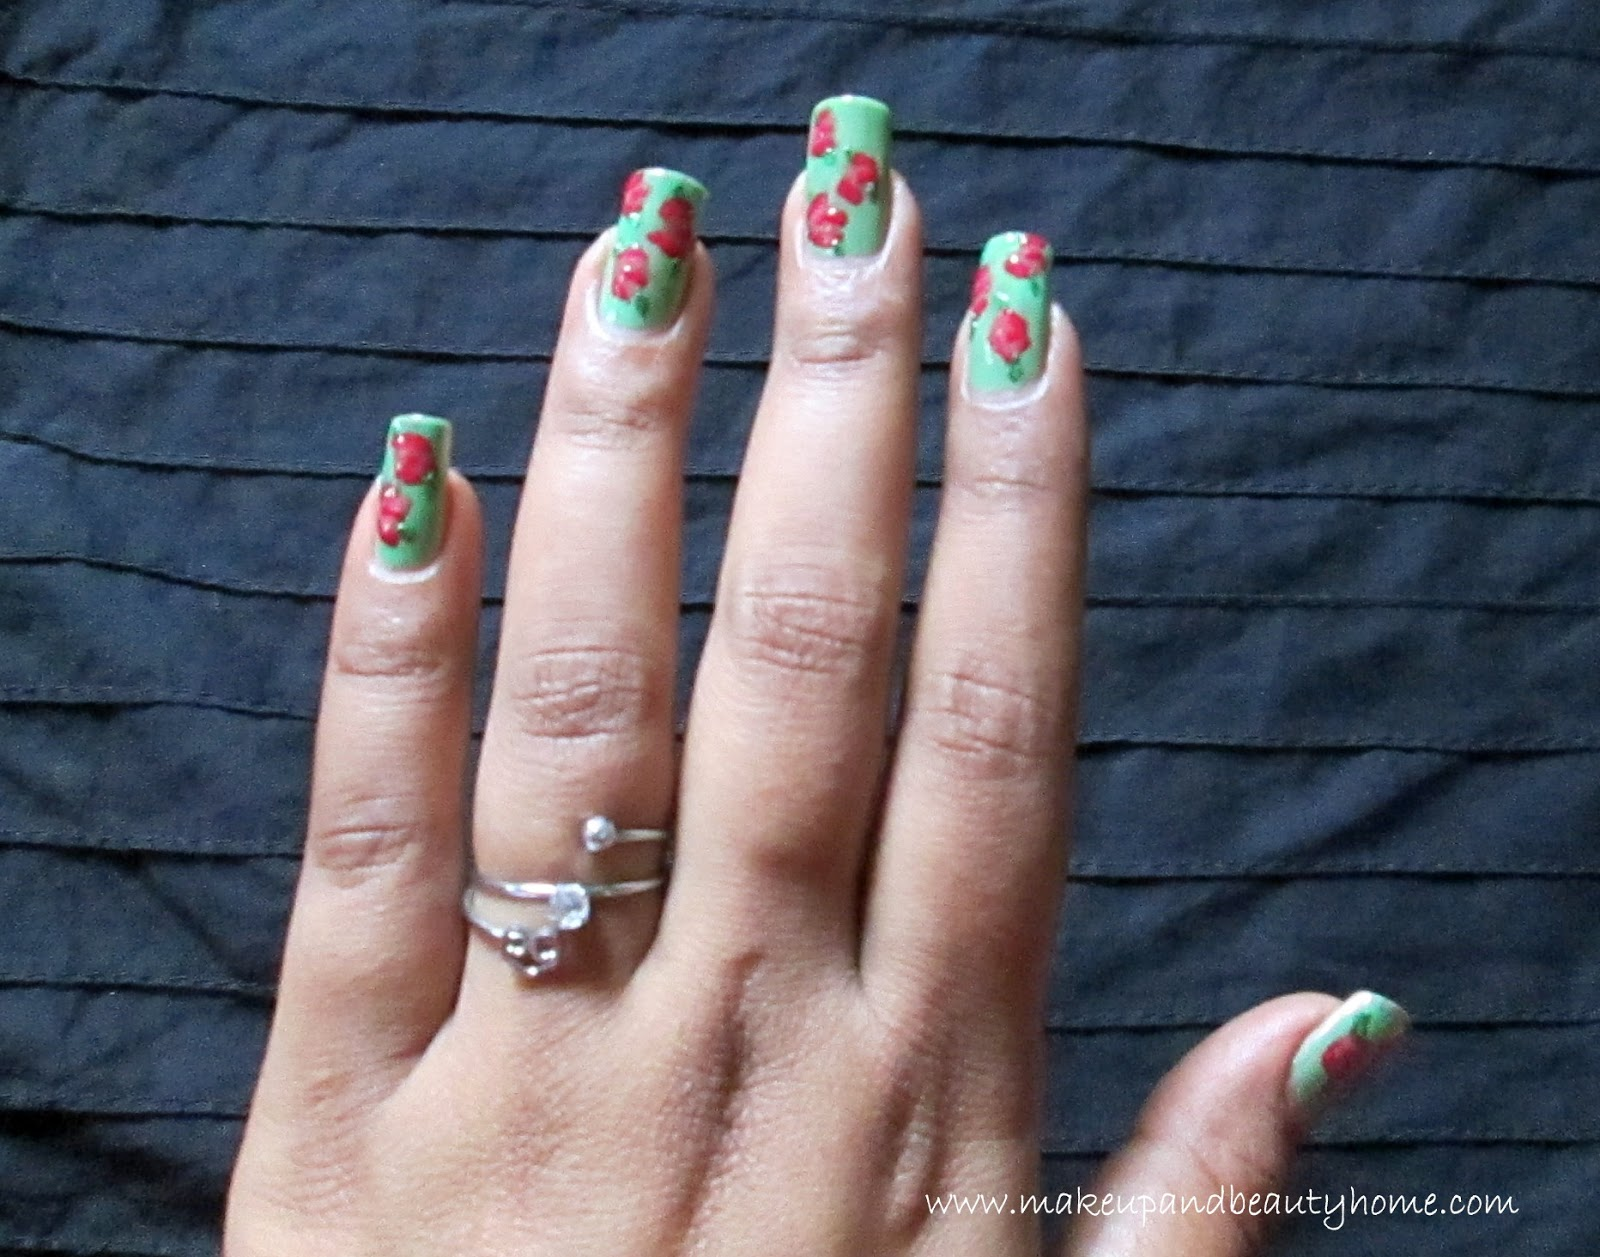 Vintage Rose Print Nail Art Tutorial Do It Yourself